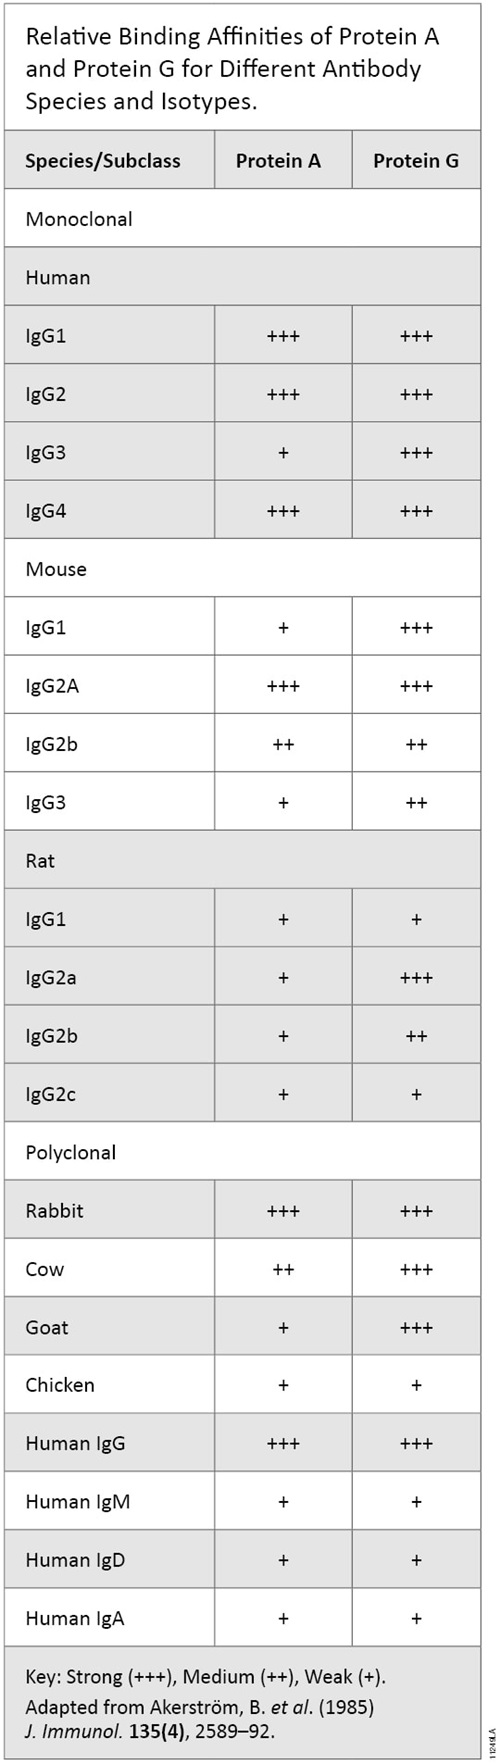 Relative binding affinities of Protein A and Protein G for different antibody species and isotypes.